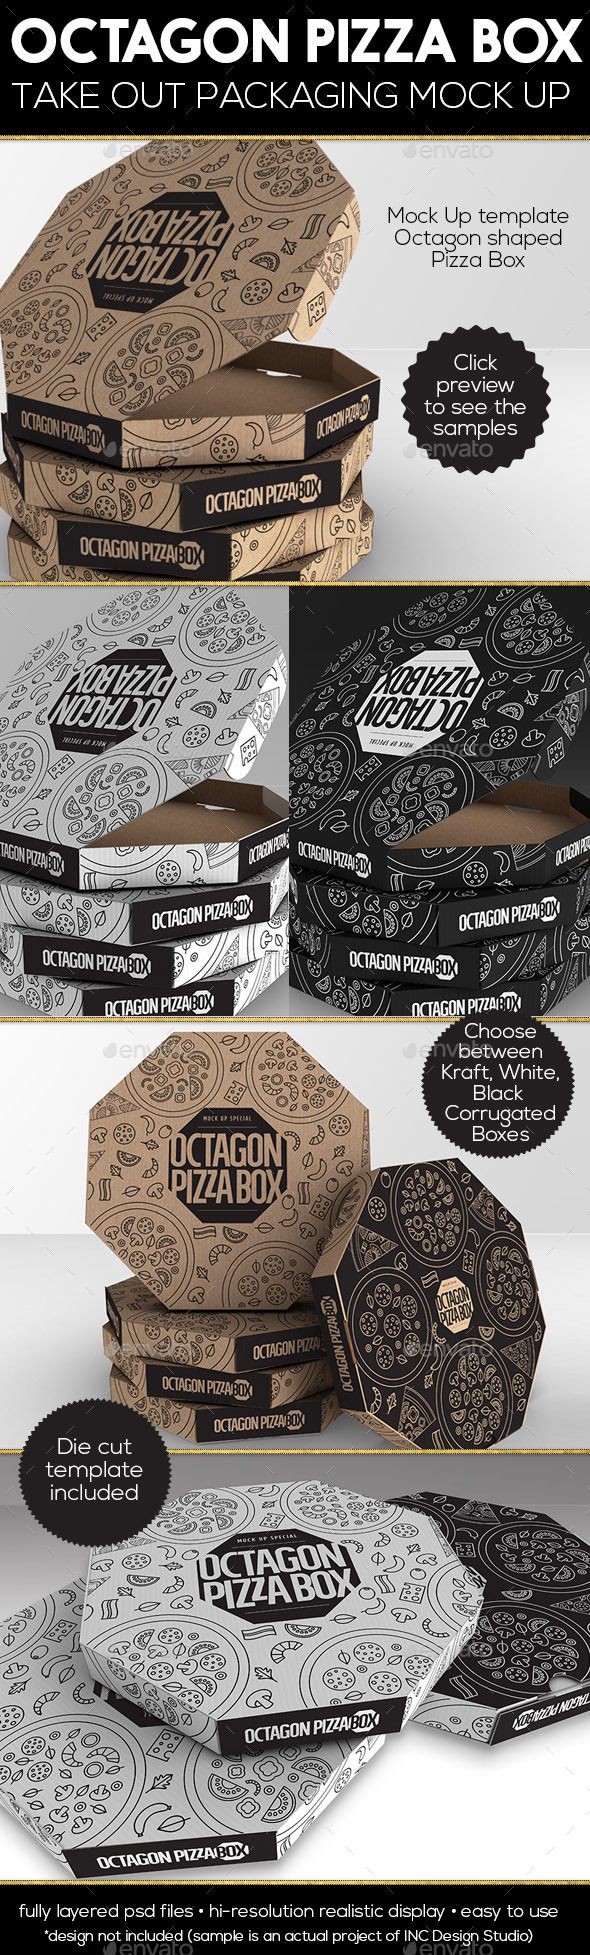 Packaging MockUp Octagon Pizza Box. Download here: http://graphicriver.net/item/packaging-mock-up-octagon-pizza-box/16687742?ref=ksioks